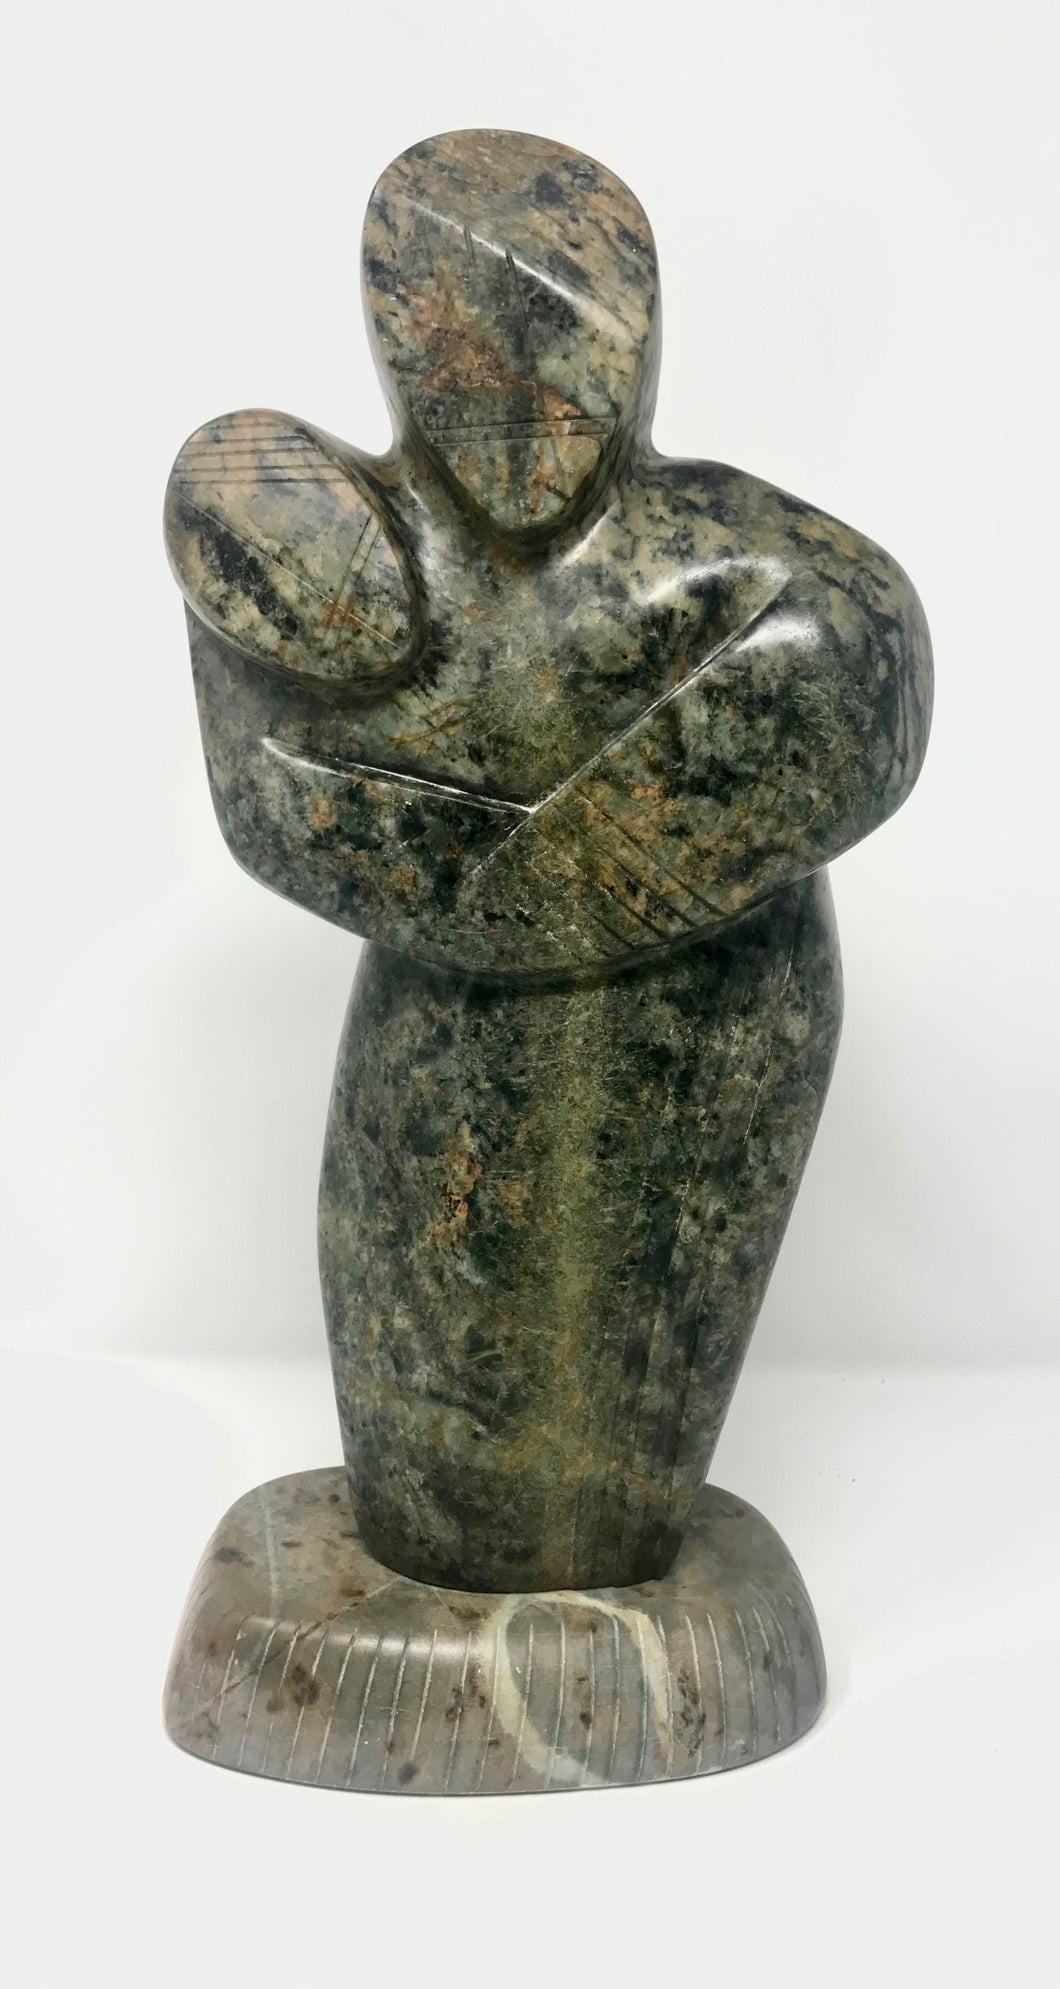 MOTHER AND CHILD - DAVID RUBEN PIQTOUKUN